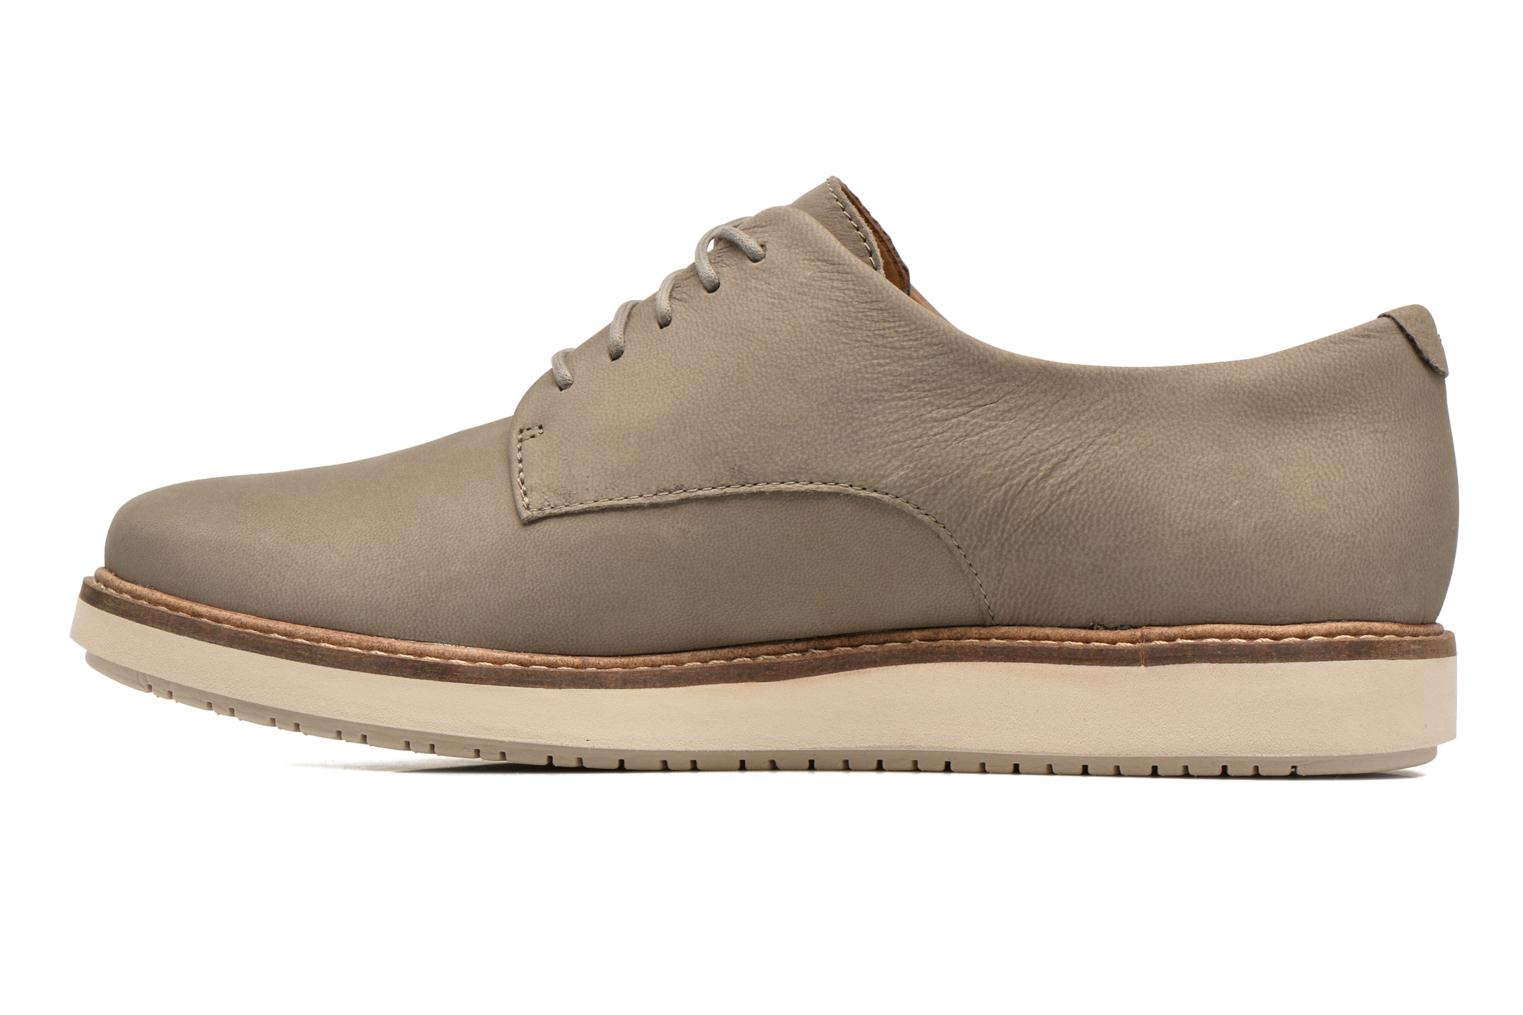 Chaussures à lacets Clarks Glick Darby Beige vue face